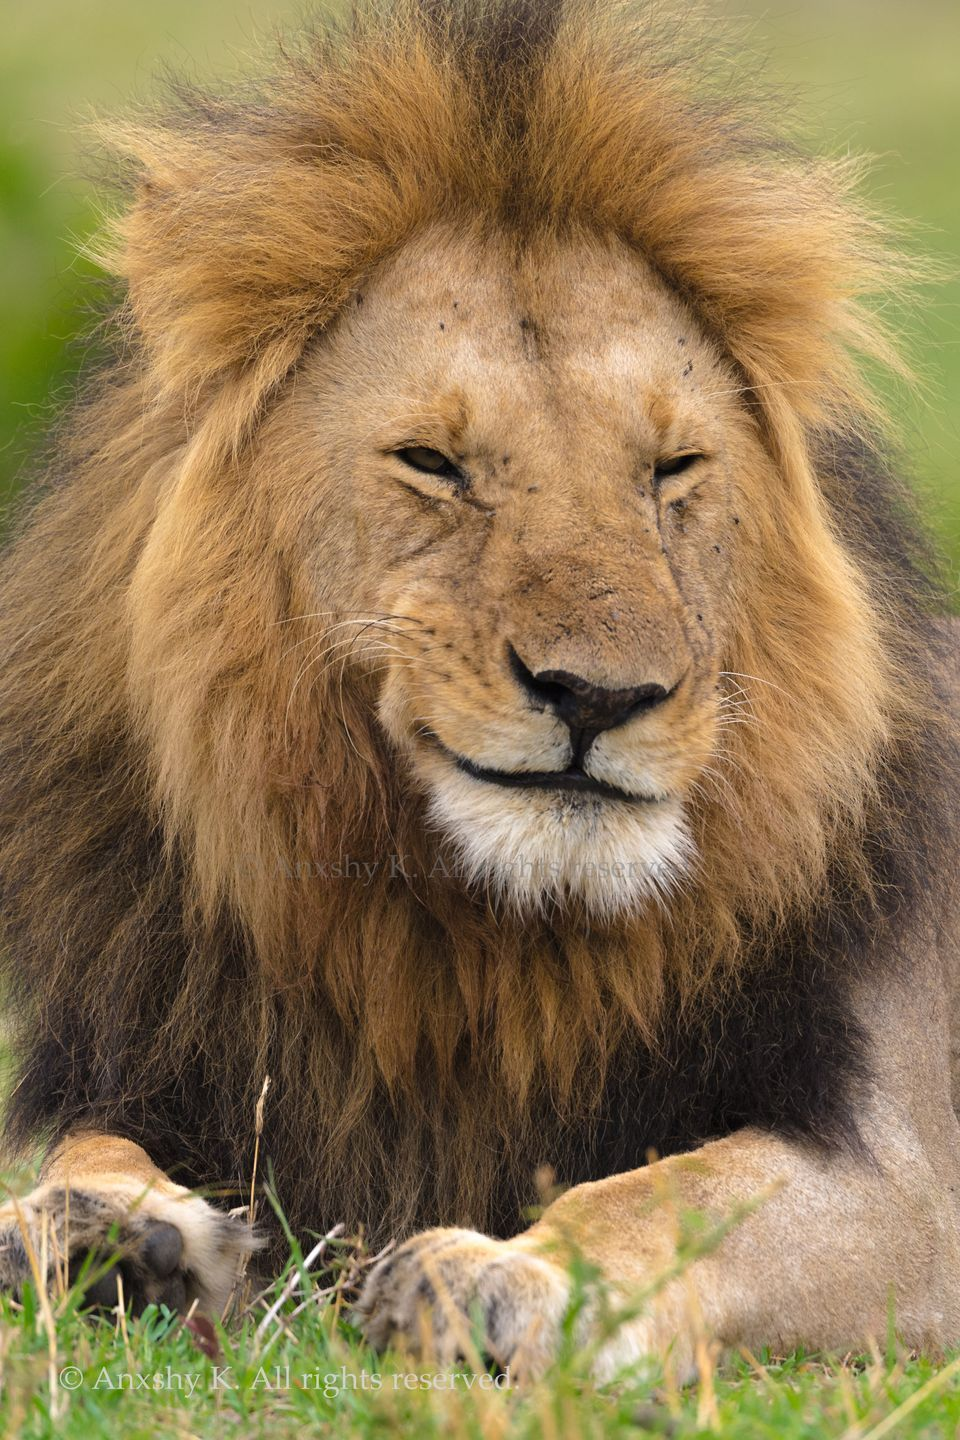 How You Doin By Anxshy K 2017 National Geographic Nature Photographer Of The Year National Geographic Animals Animals Wild Majestic Animals